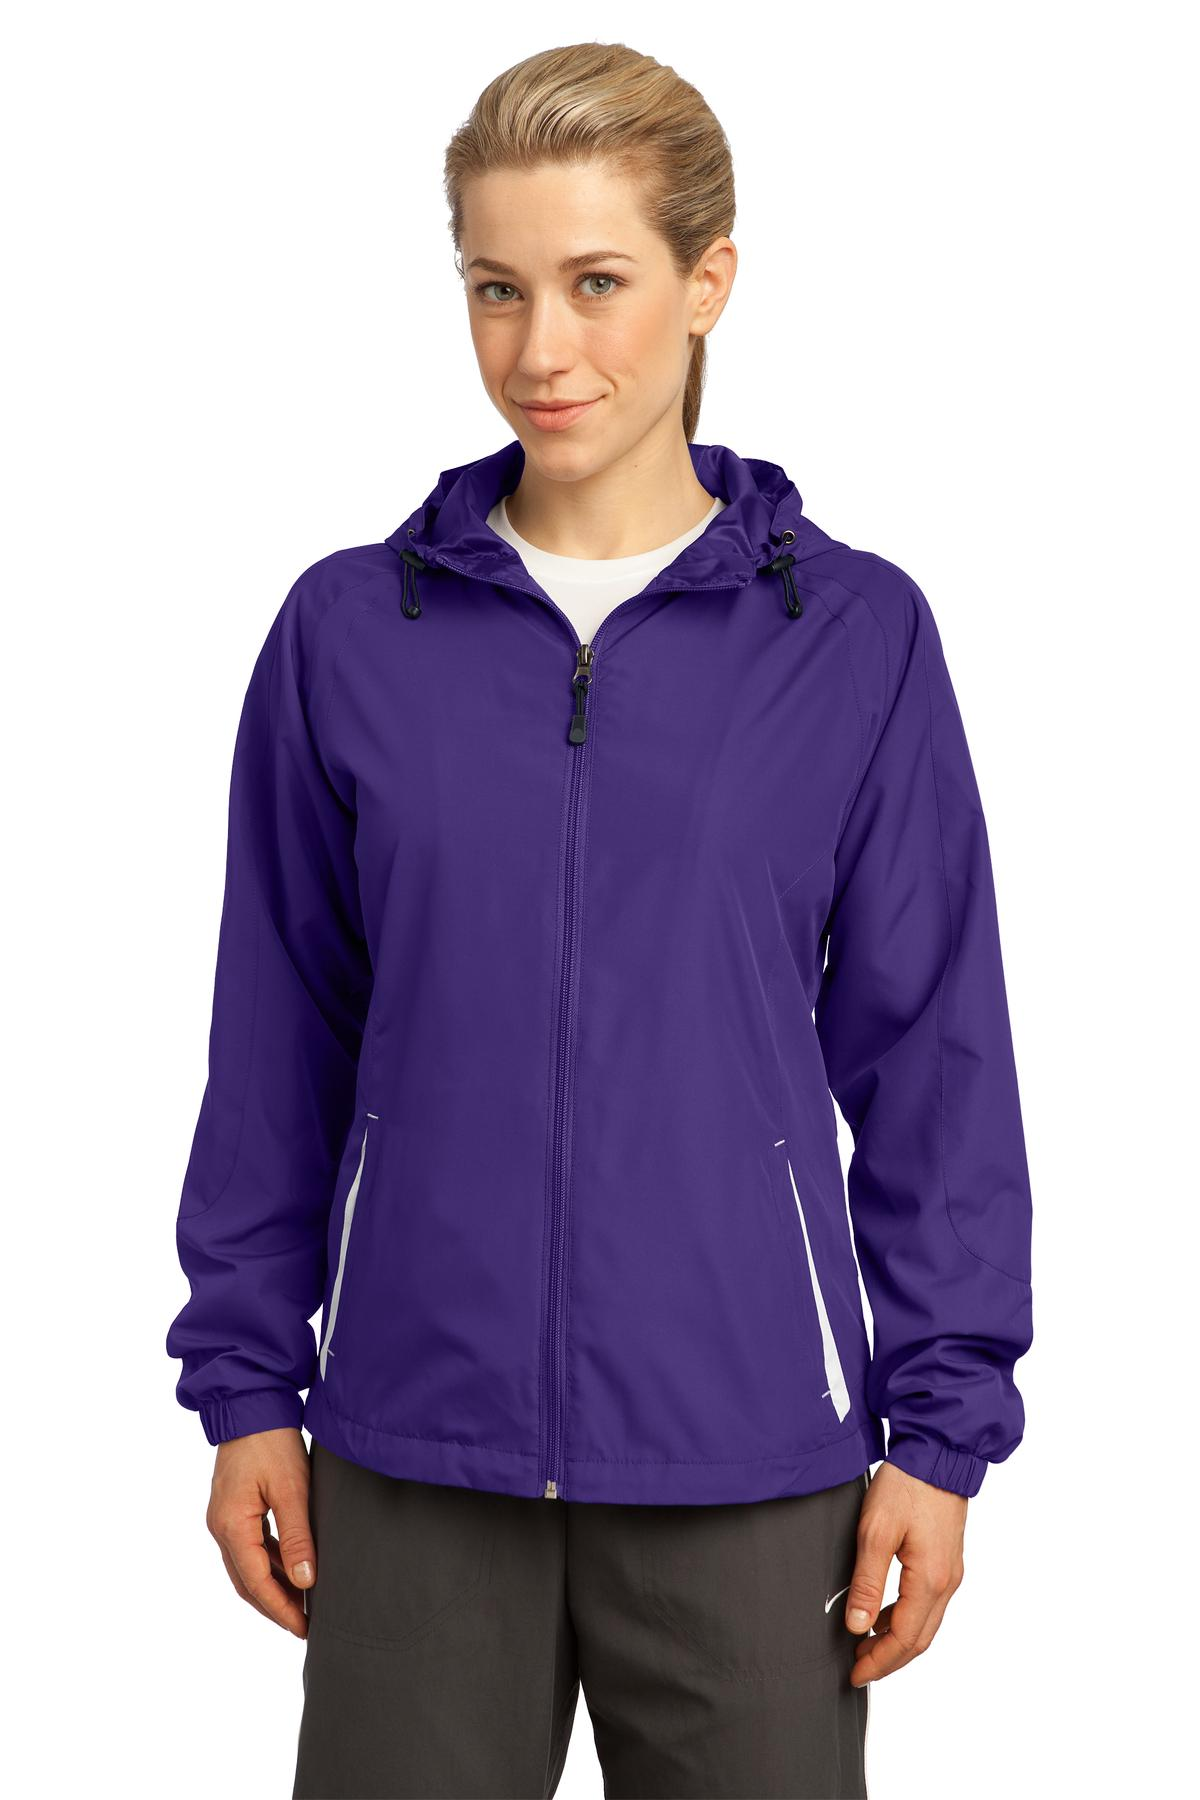 Sport-Tek ®  Ladies Colorblock Hooded Raglan Jacket. LST76 - Purple/White